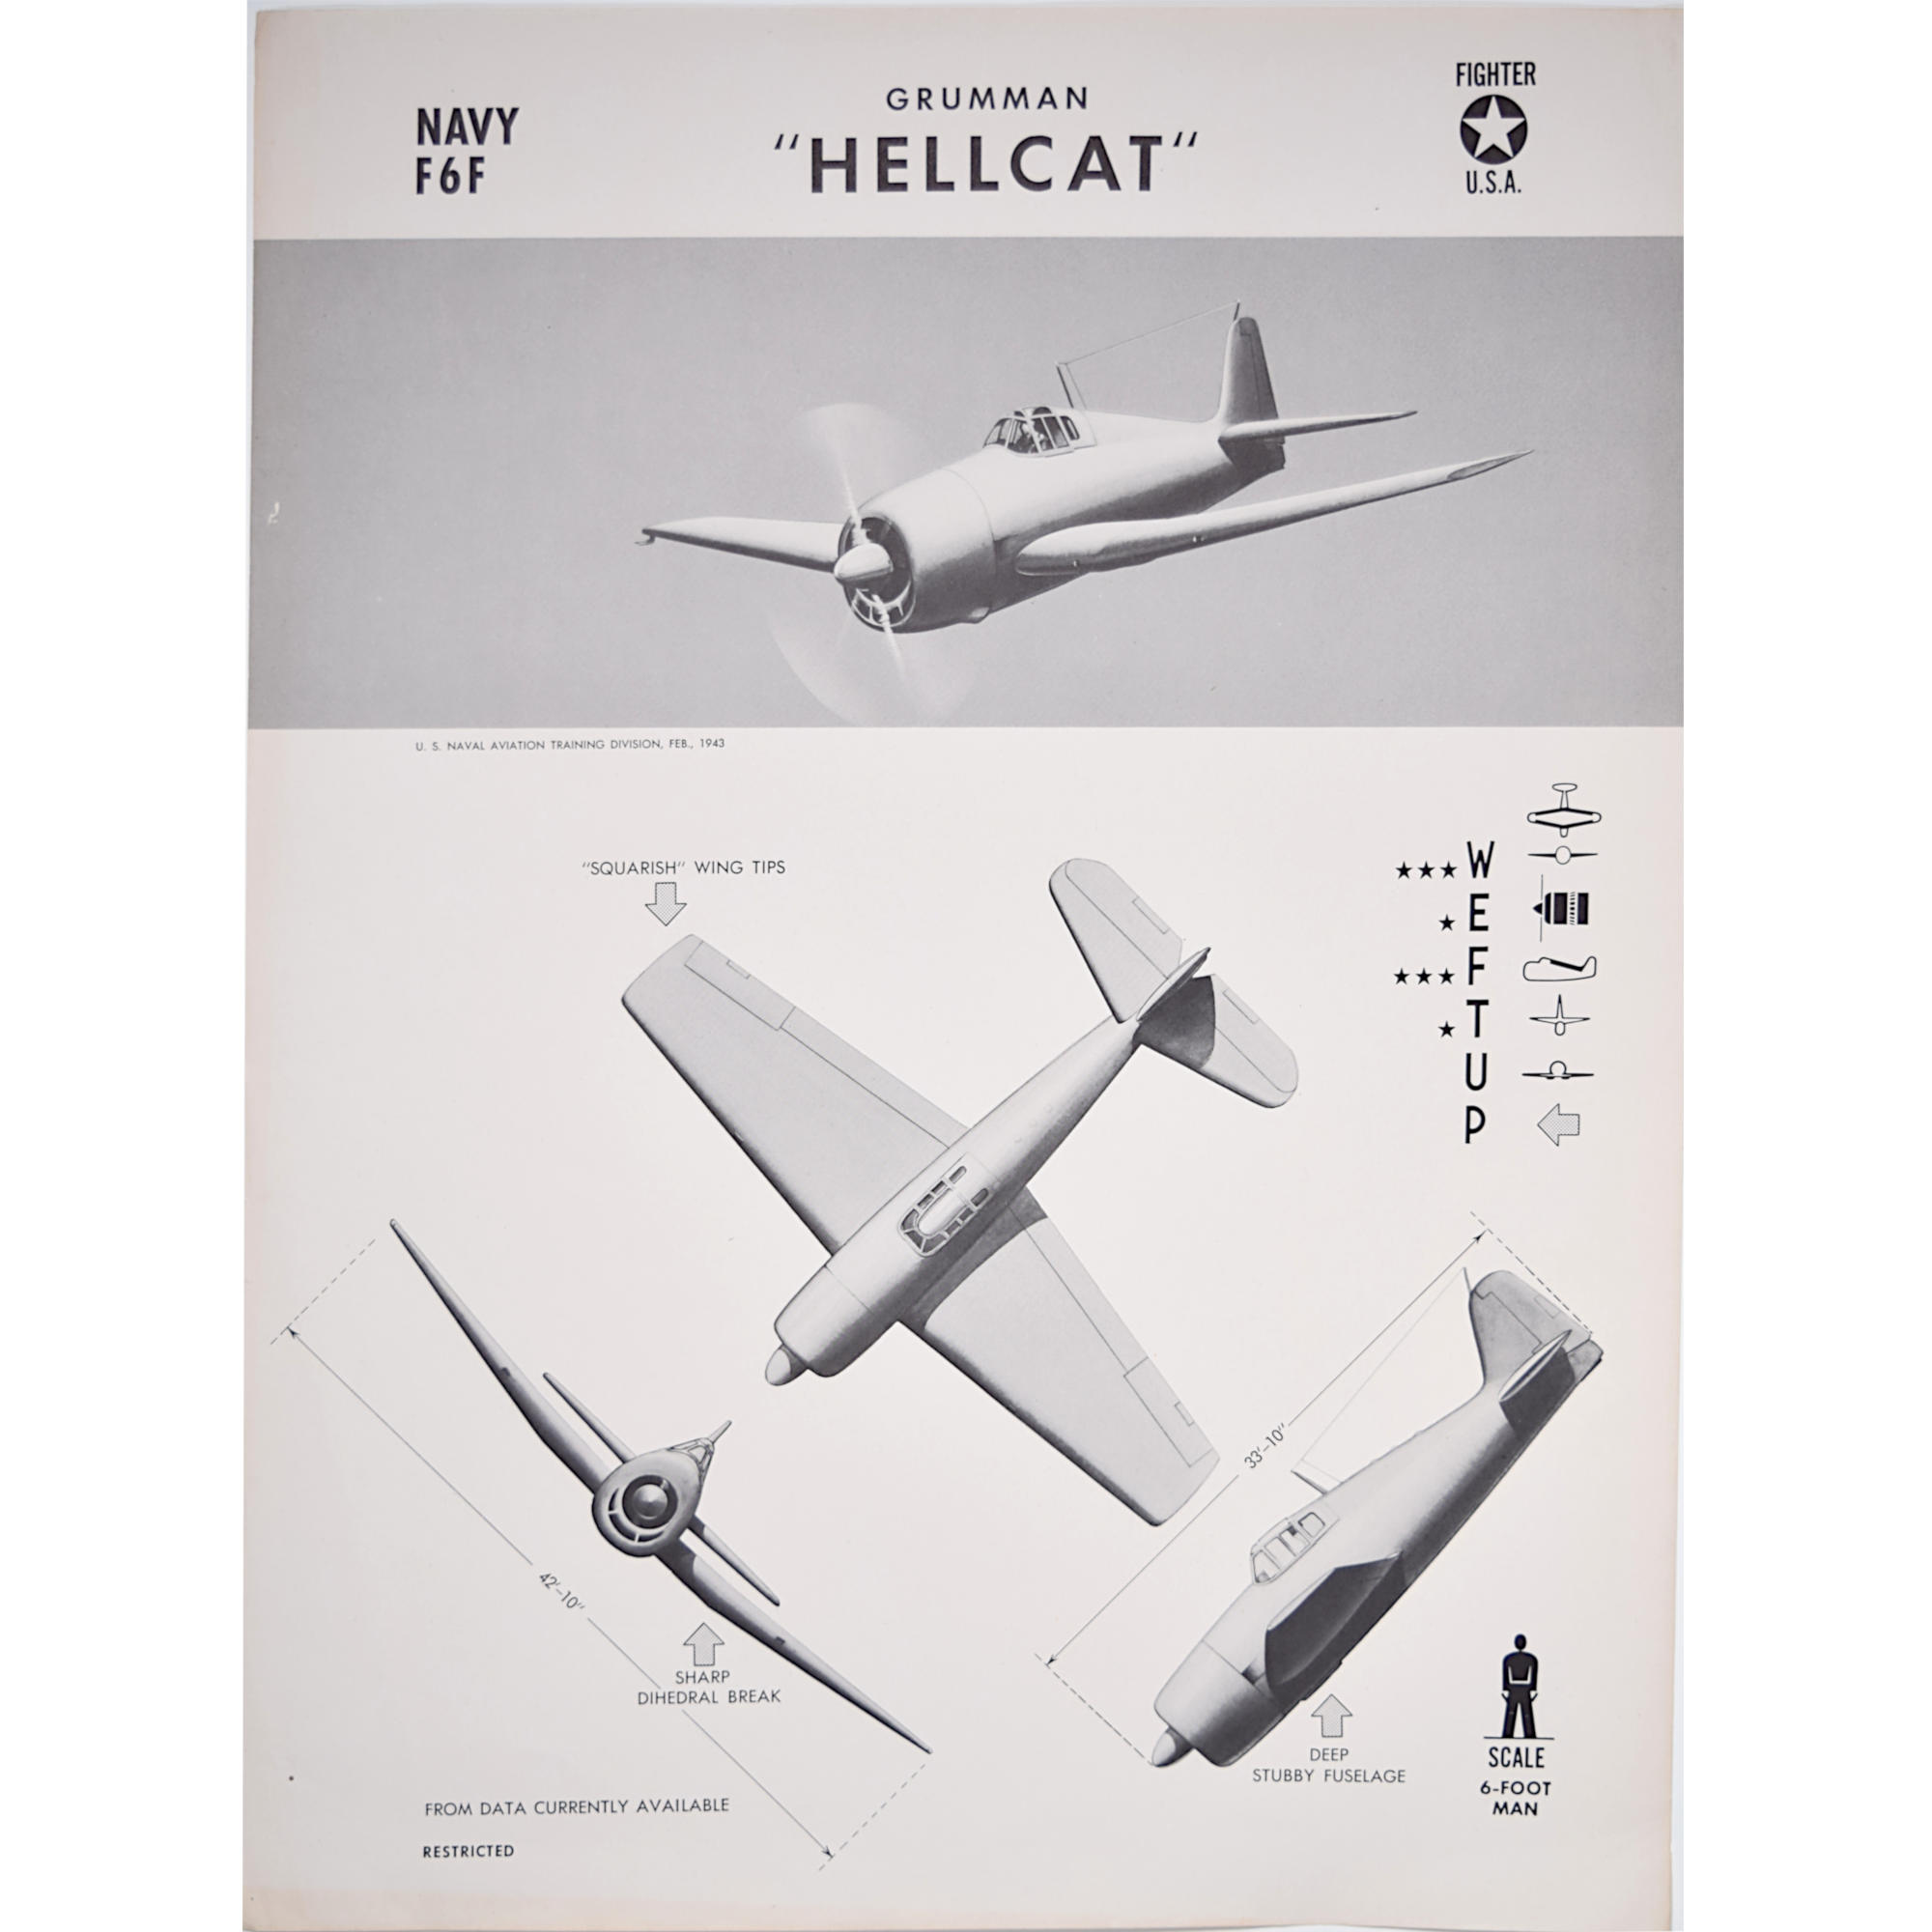 Grumann Hellcat aircraft original WW2 recognition poster